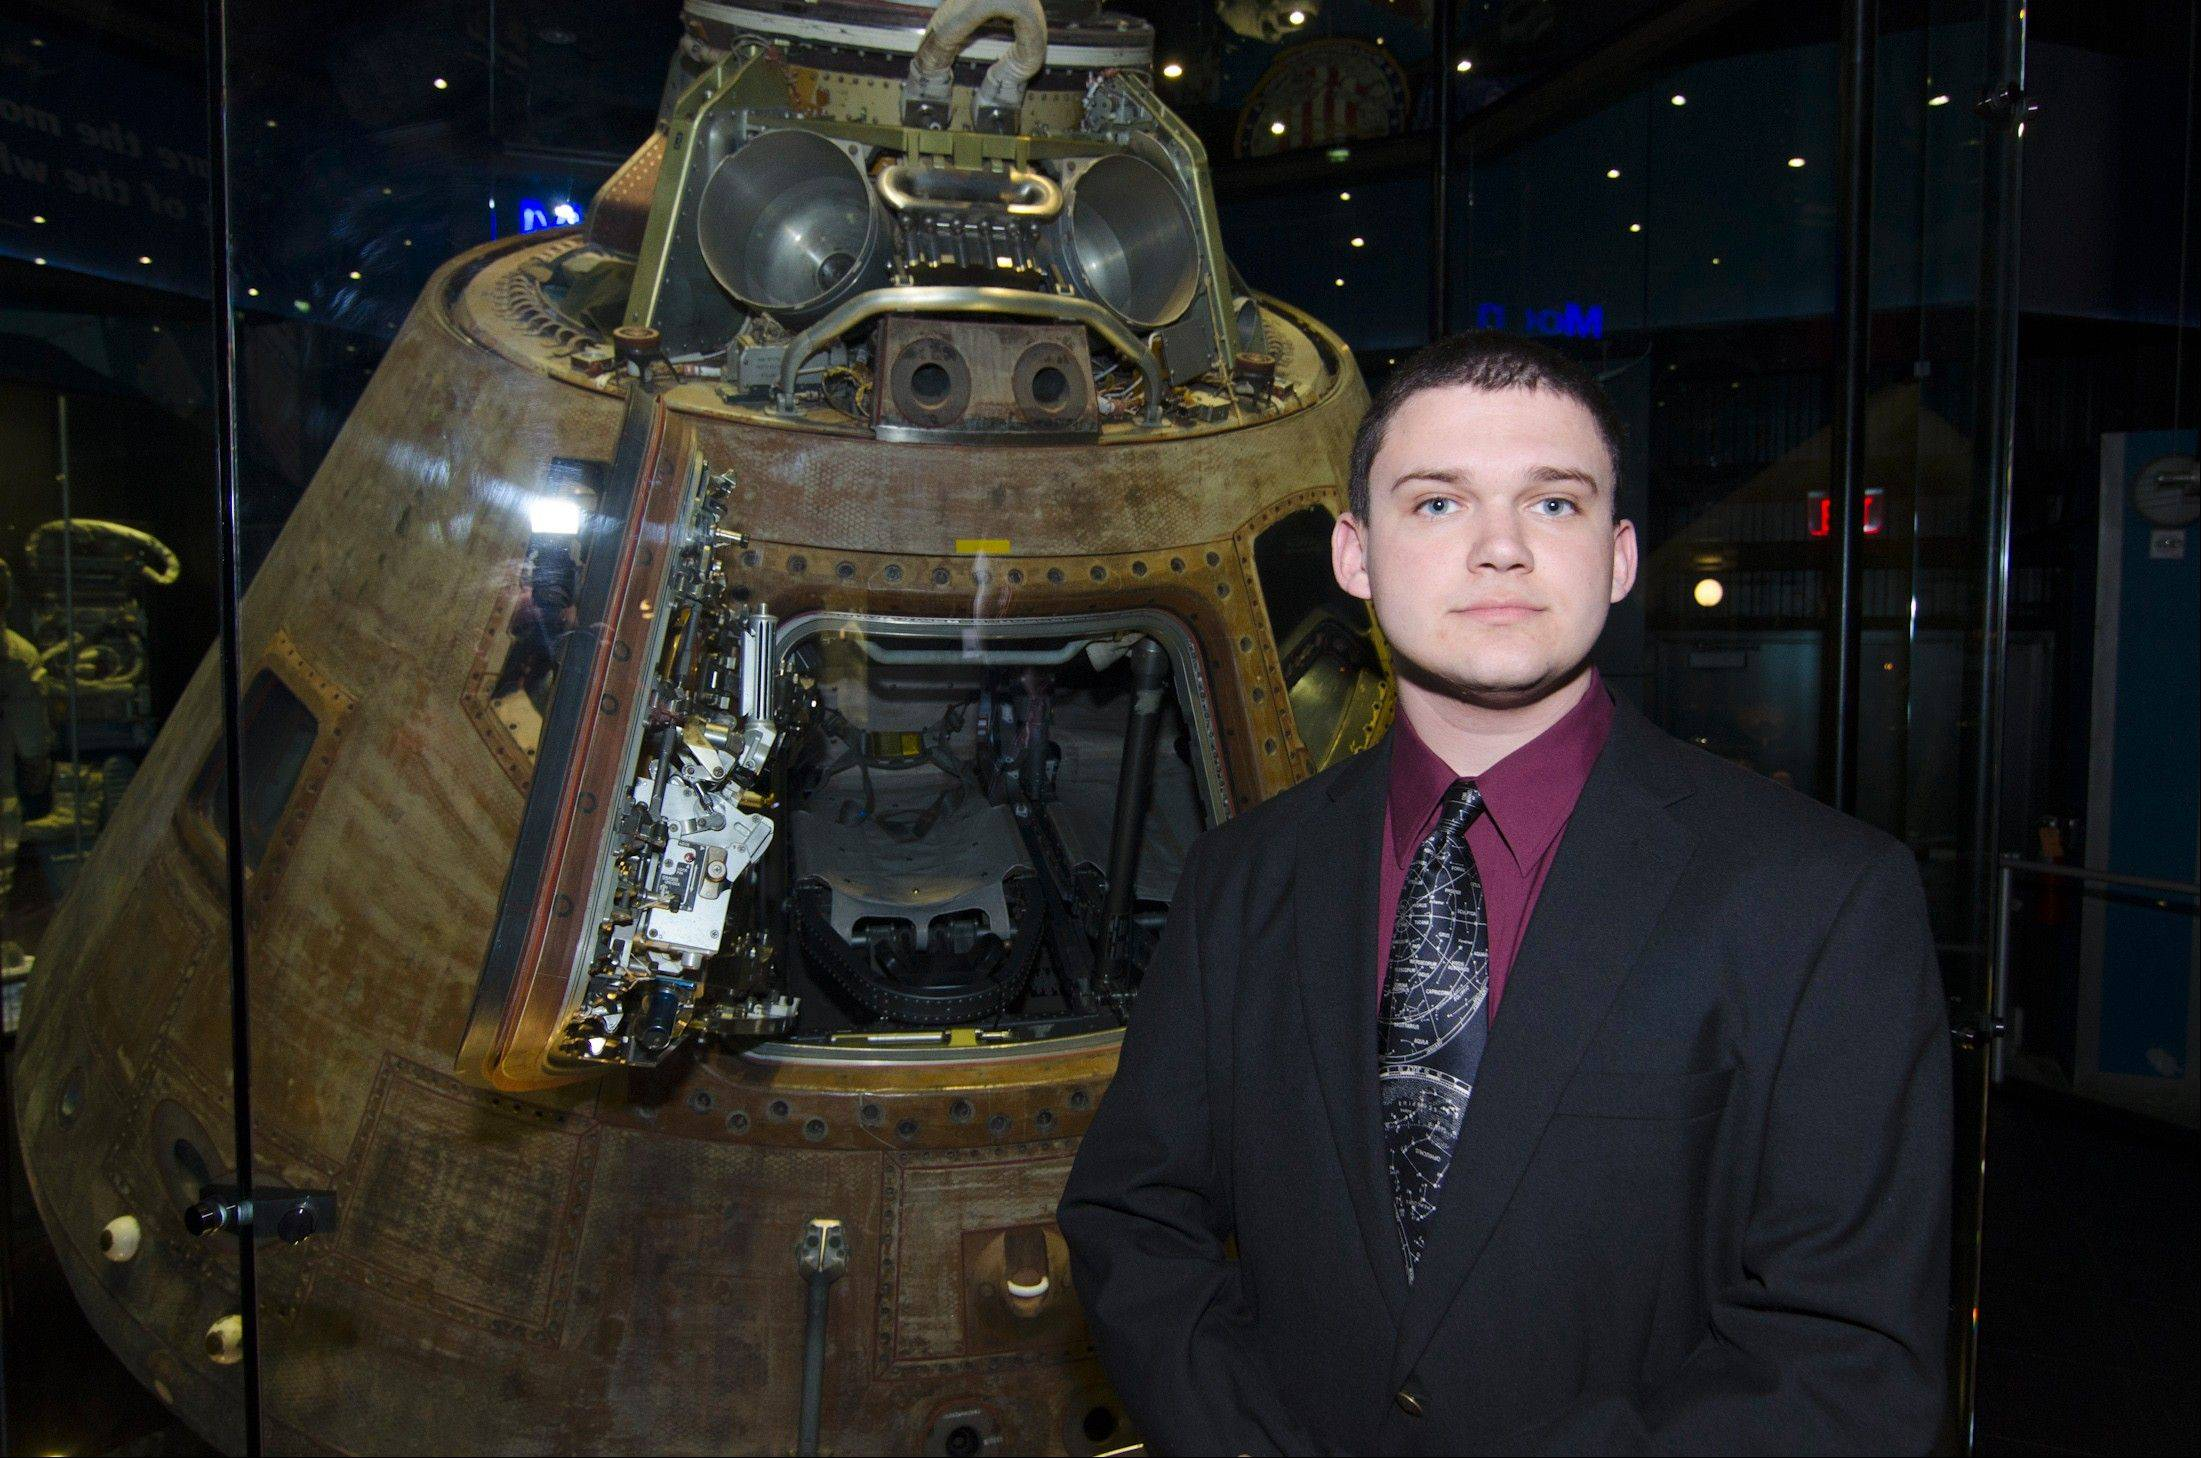 Daniel McGarry of Streamwood stands in front of the Apollo 16 command module at the Honeywell Leadership Challenge.